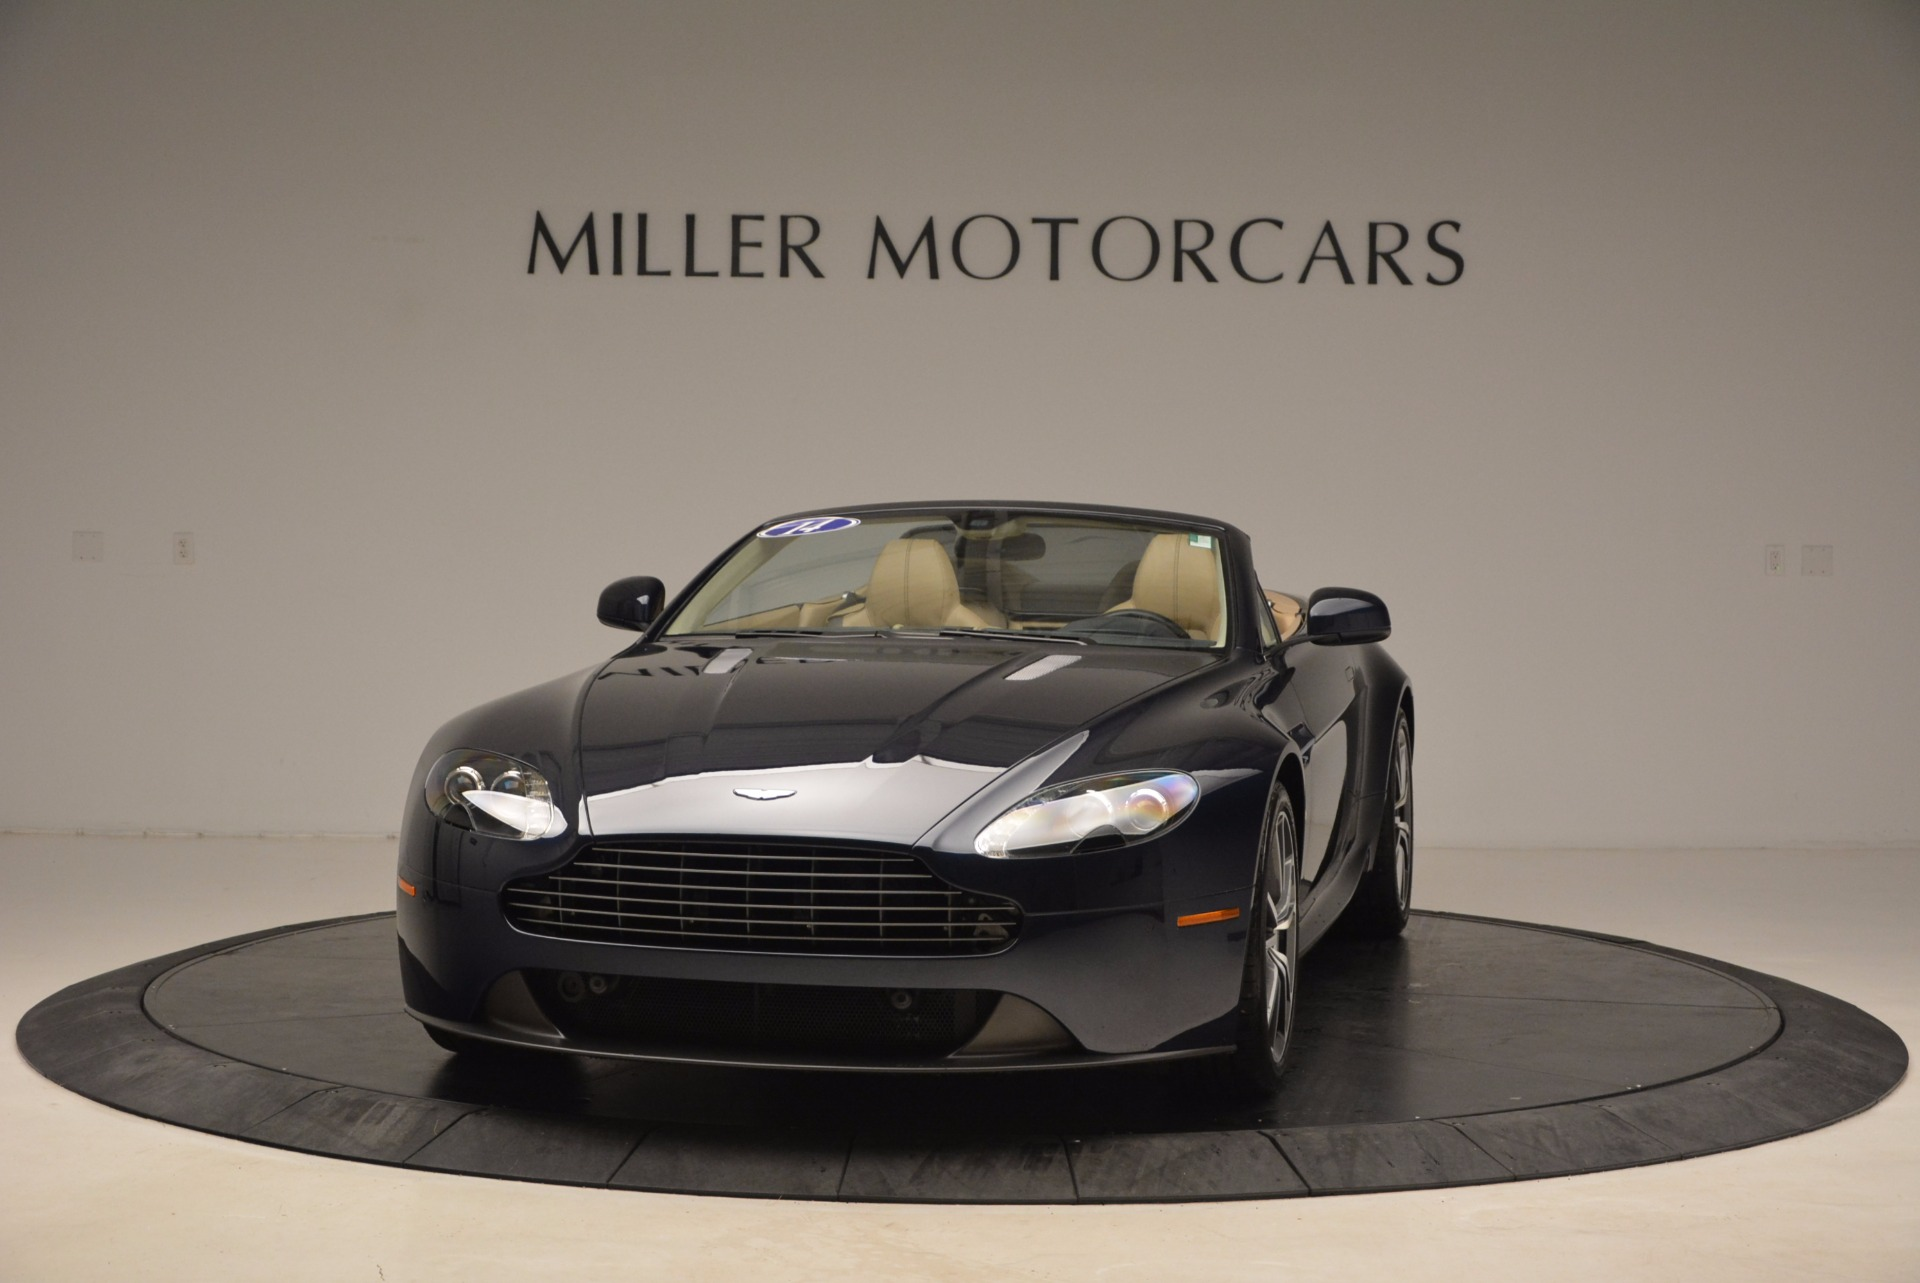 Used 2014 Aston Martin V8 Vantage Roadster for sale Sold at McLaren Greenwich in Greenwich CT 06830 1